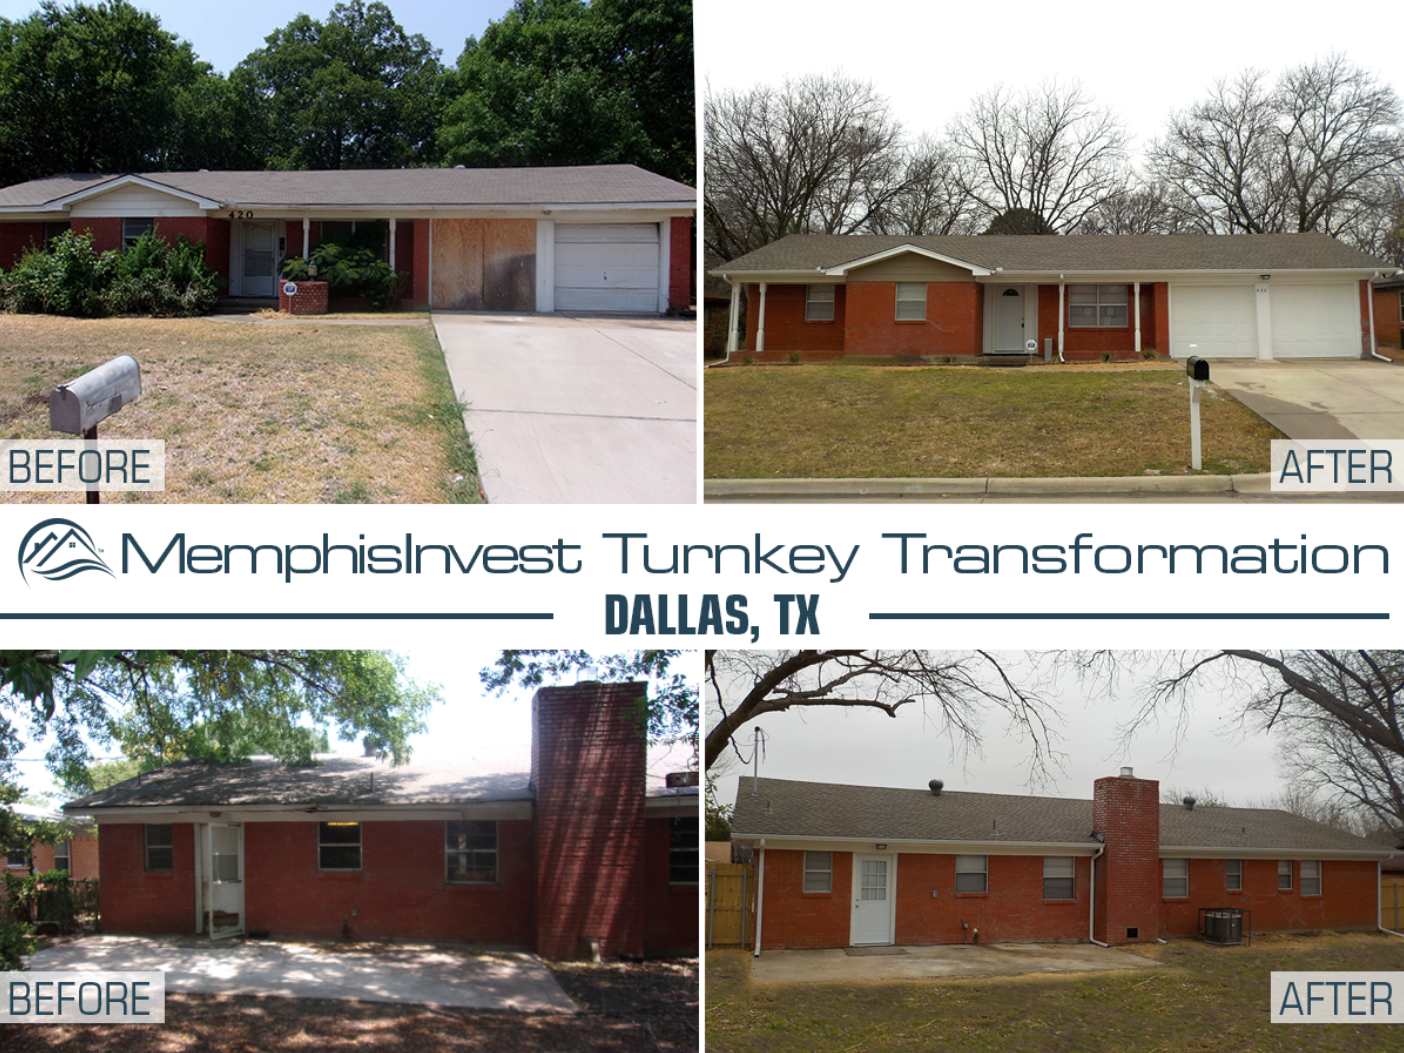 Dallas_Turnkey_Transformation